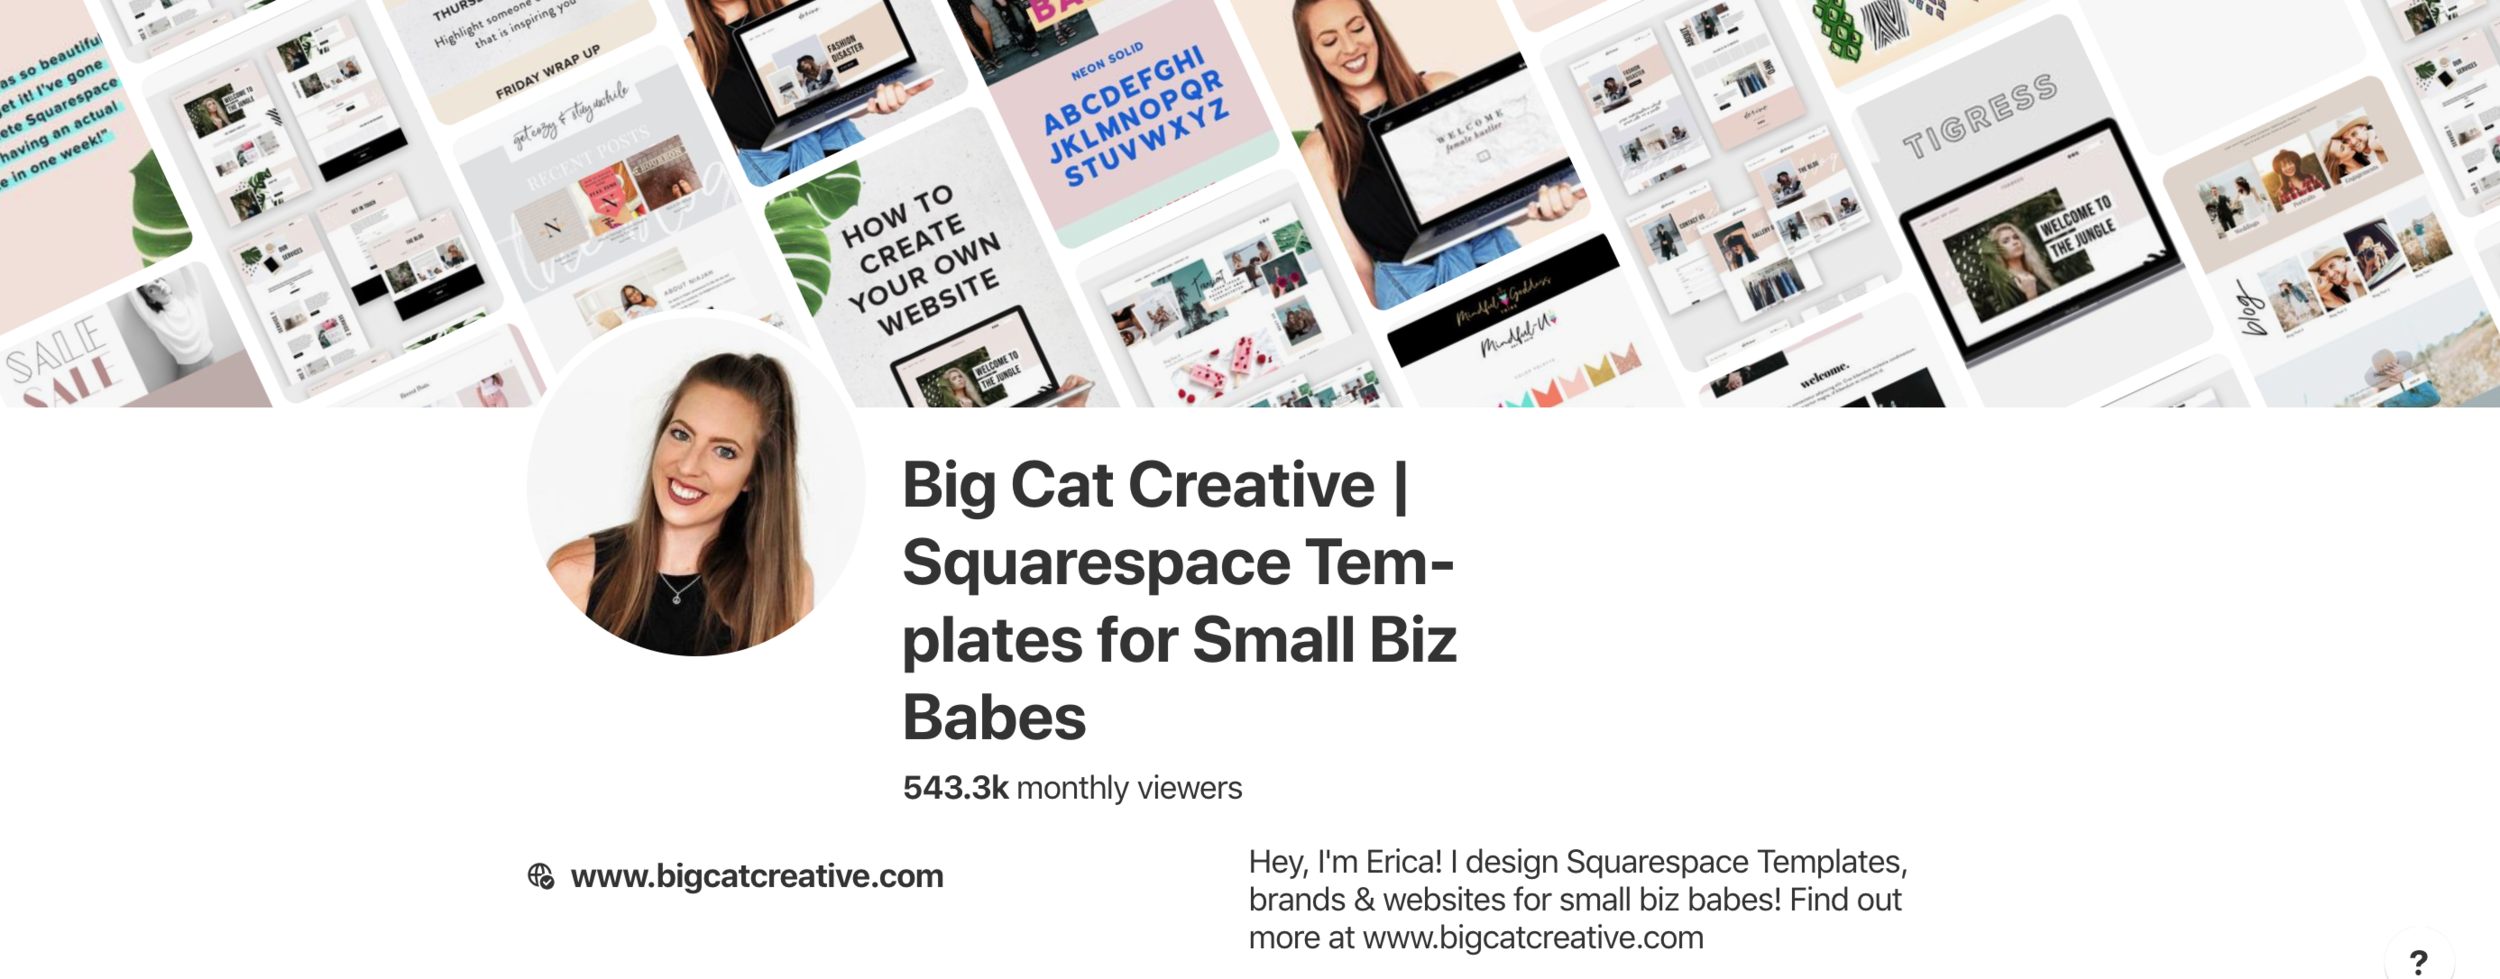 Pinterest For Business Strategy: how to increase your website traffic and land clients with Pinterest - By Big Cat Creative